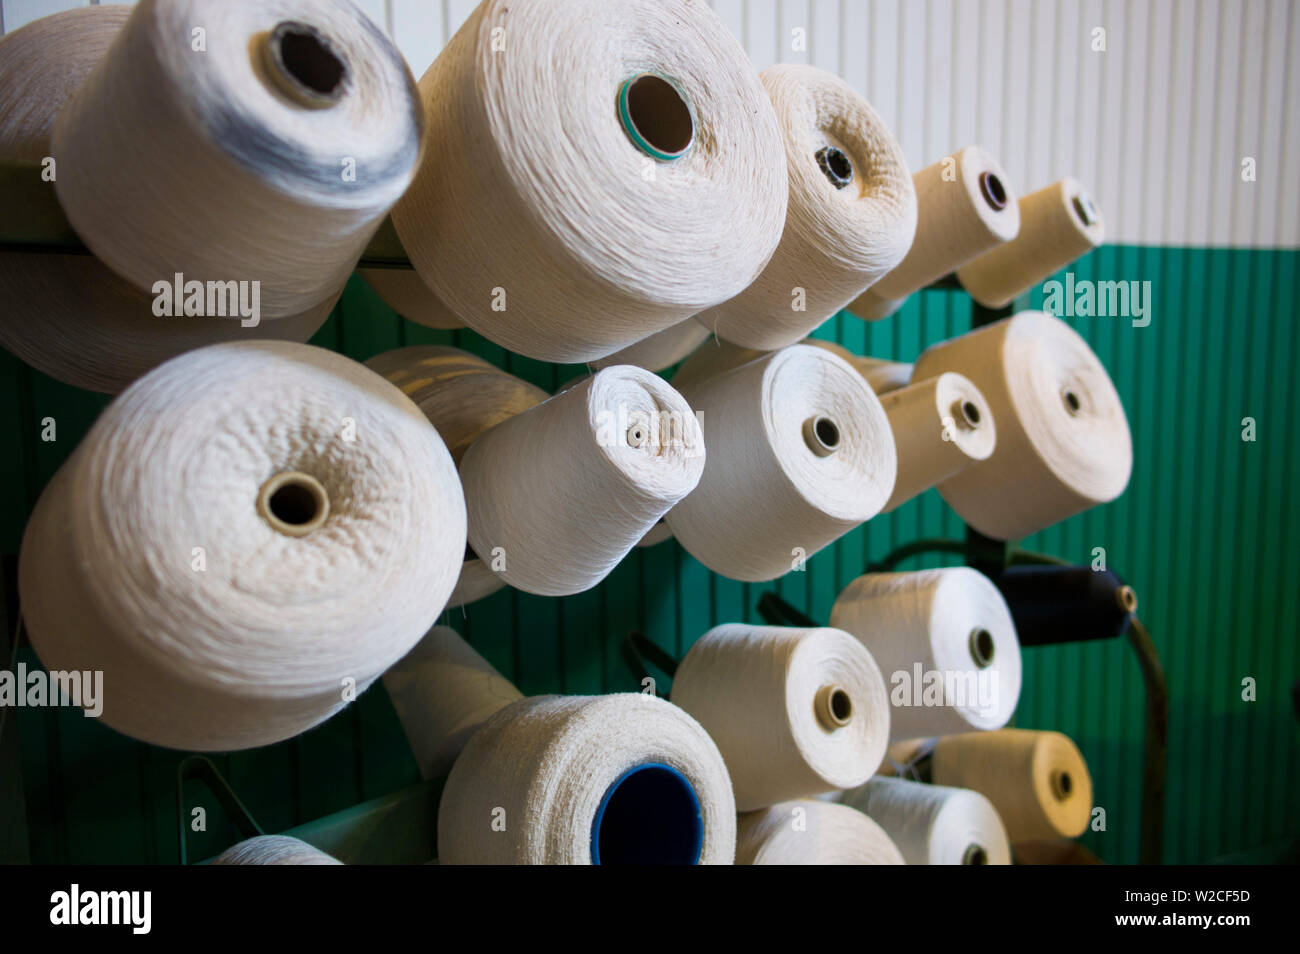 USA, Massachusetts, Lowell, Lowell National Historic Park, Boott Cotton Mills Museum, the weave room, early US fabric manufacturing - Stock Image